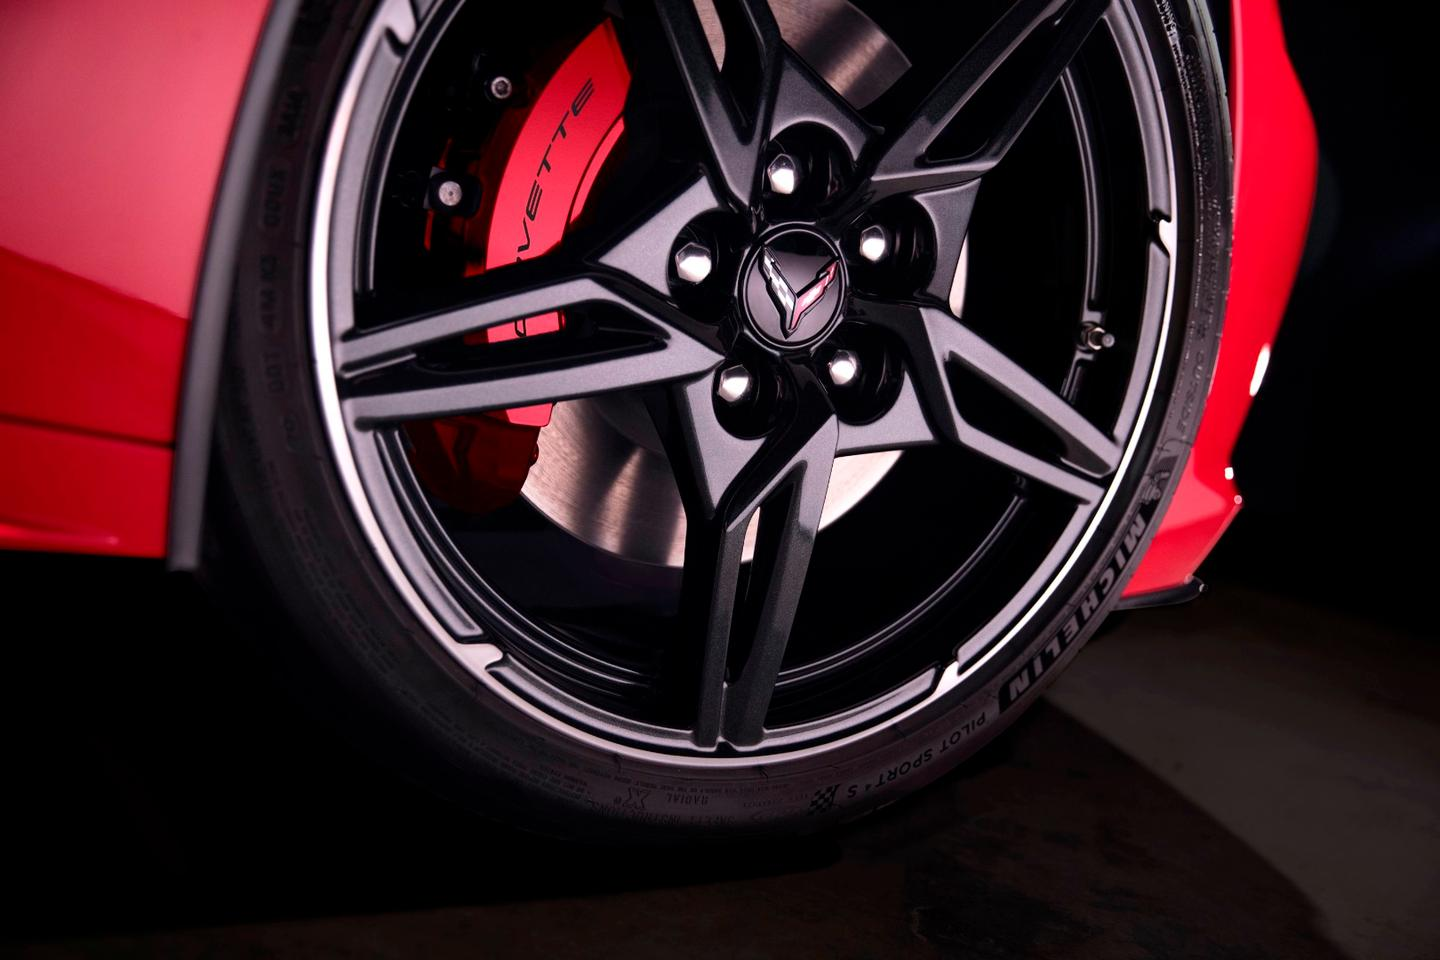 Corvette embossed brake calipers mark the Z51 package